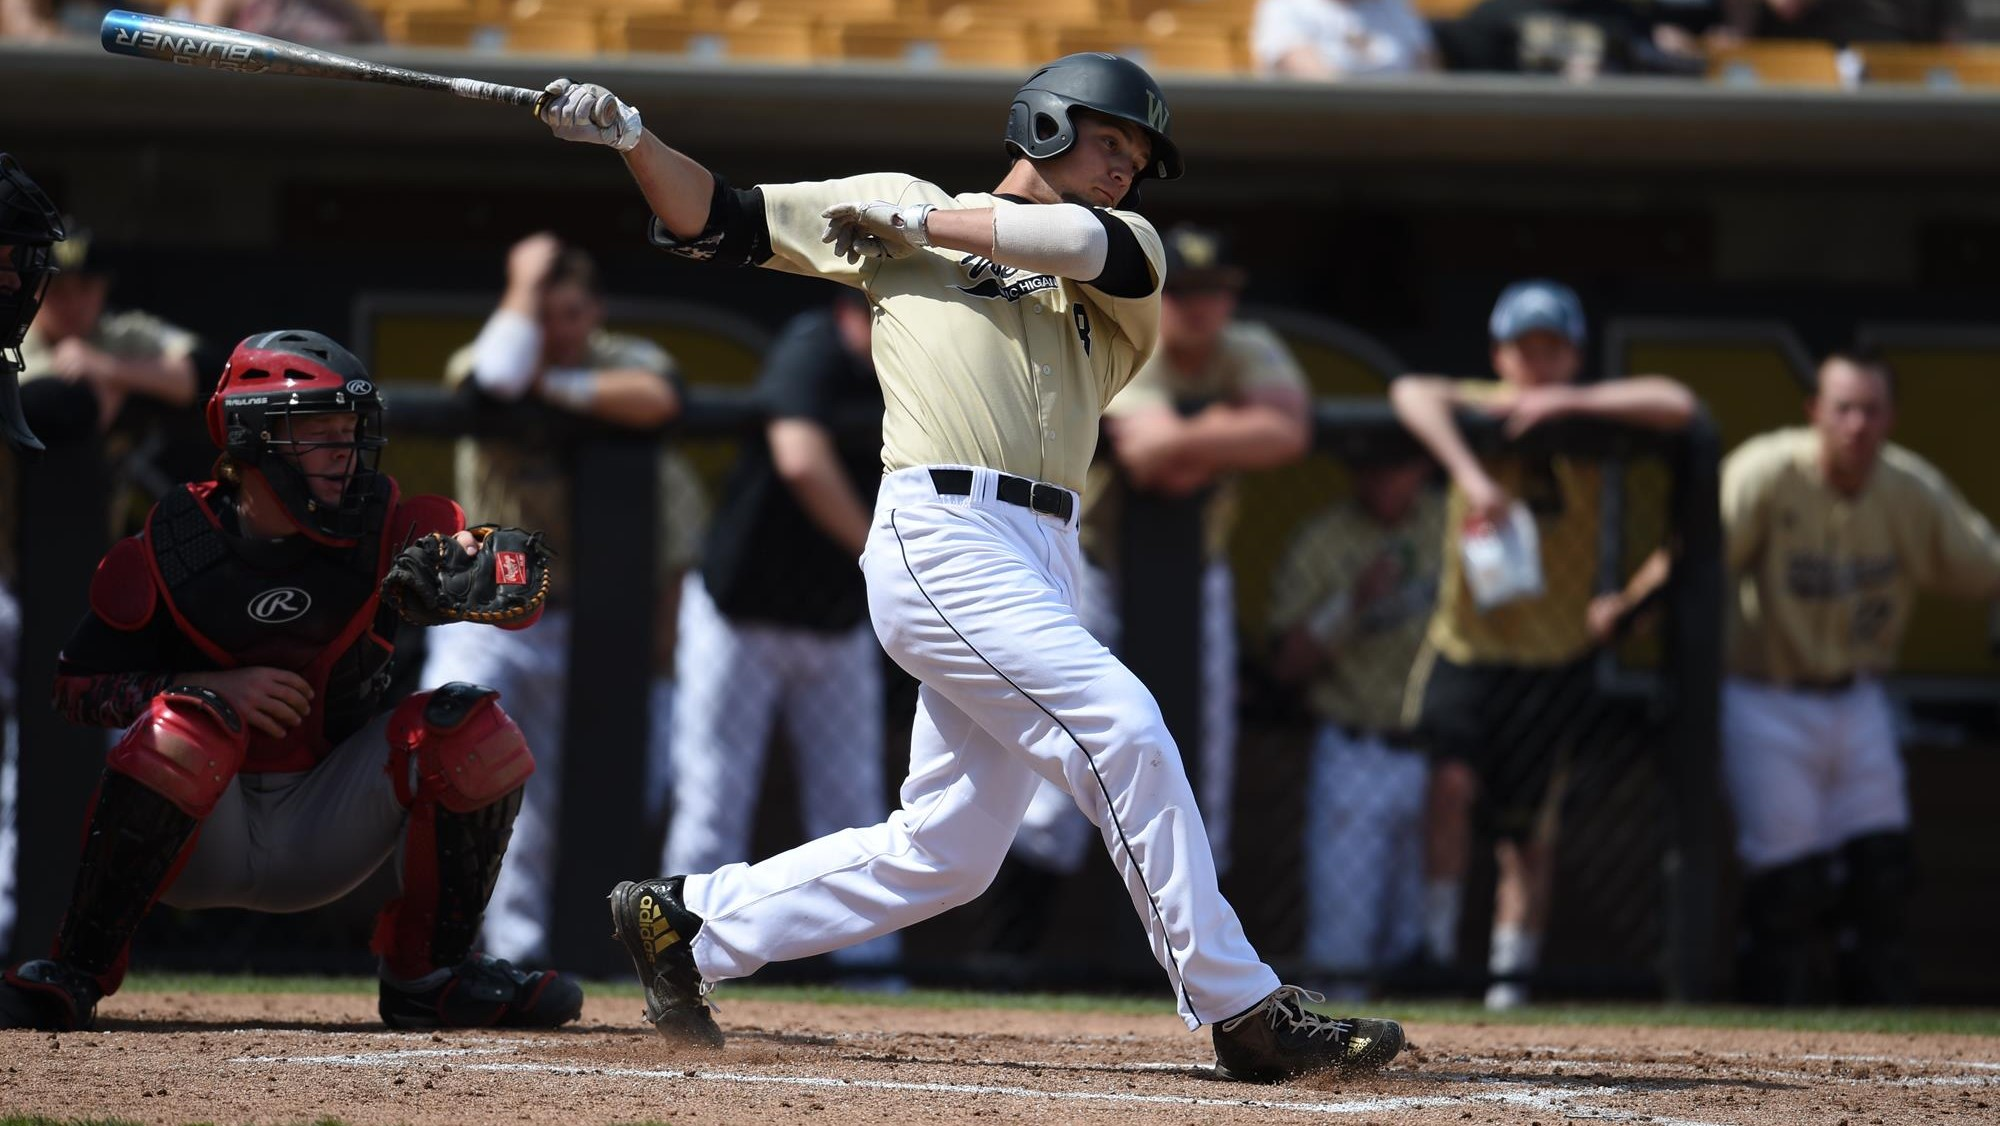 Tanner Allison Drafted by Atlanta Braves in 19th Round